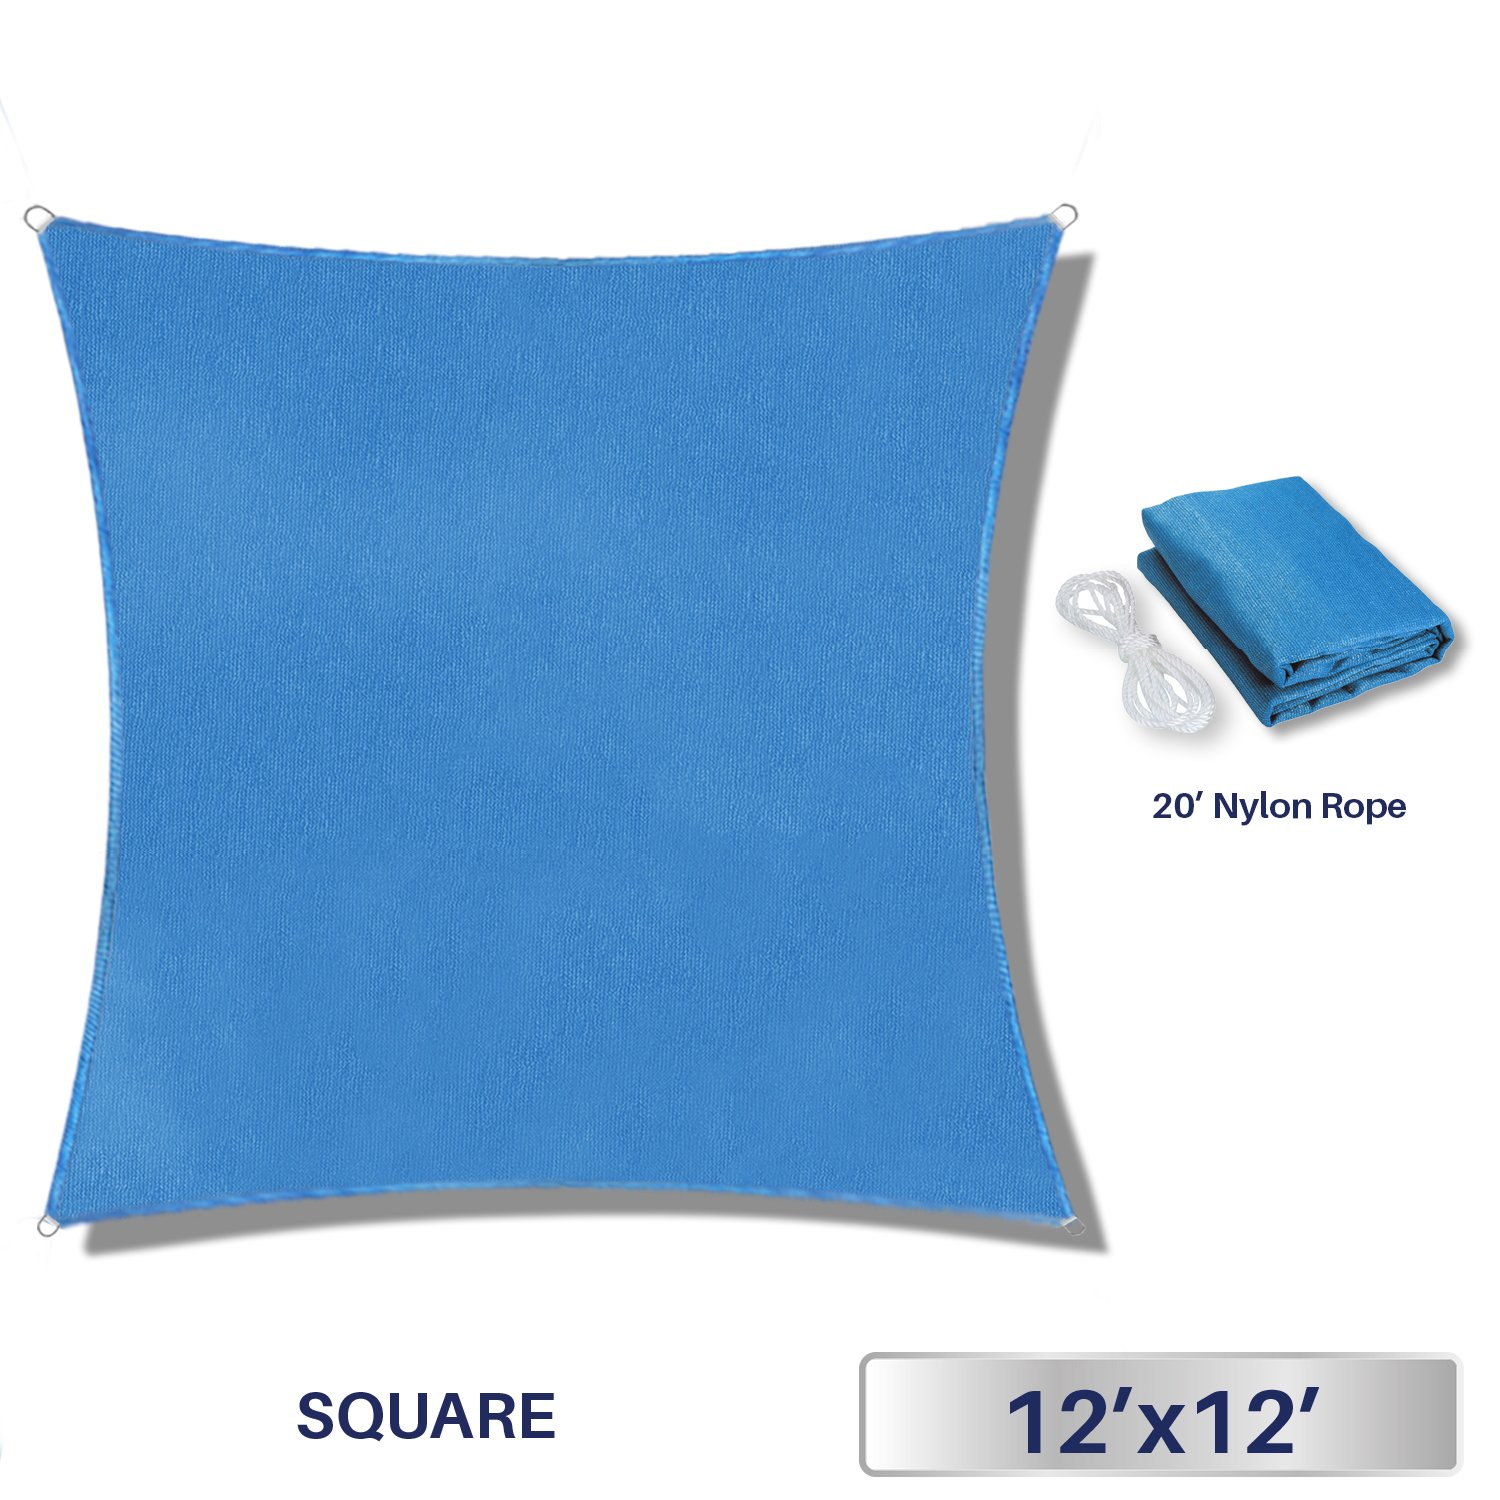 Windscreen4less 12' x 12' Sun Shade Sail UV Block Fabric Canopy in Sky Blue Square for Patio Garden Customized Sizes Available 3 Year Limited Warranty